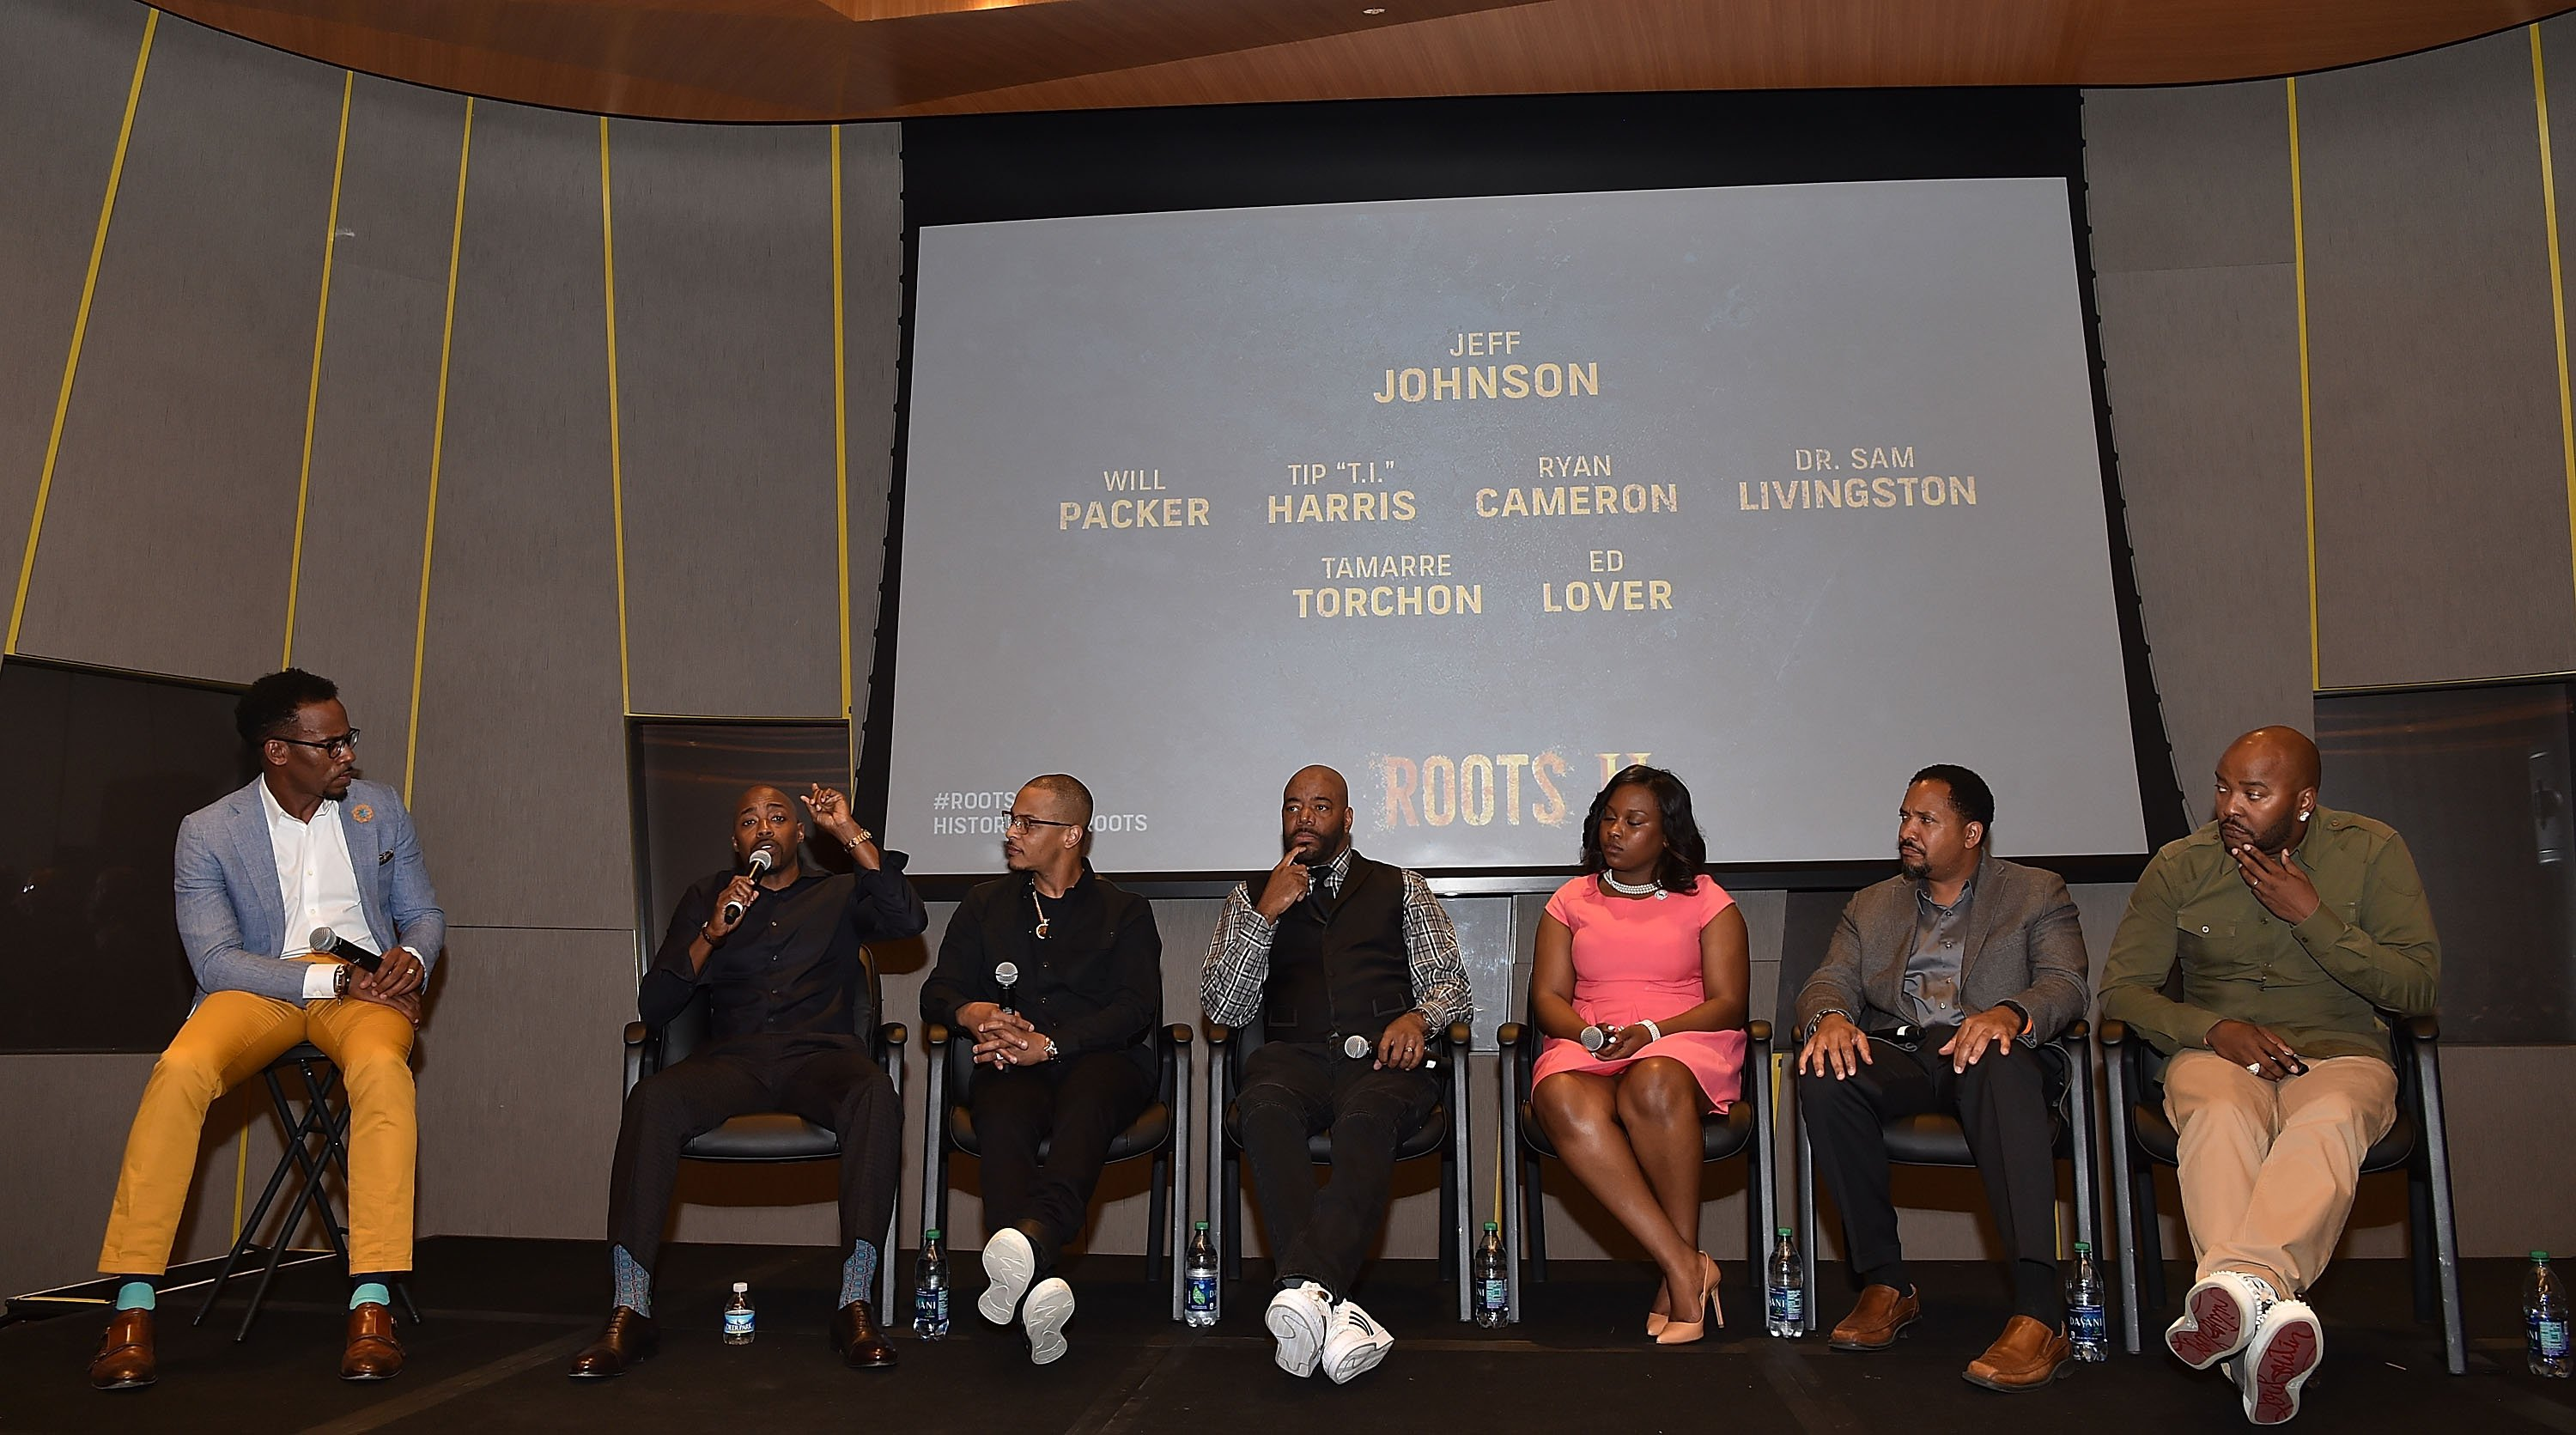 """""""ATLANTA, GA - MAY 09: (L-R) Jeff Johnson, Will Packer, Tip """"T.I."""" Harris, Ed Lover, Tamarre Torchon, Dr. Samuel Livingston, Ryan Cameron onstage at HISTORY's """"Roots"""" Atlanta advanced screening at National Center for Civil and Human Rights on May 9, 2016 in Atlanta, Georgia. (Photo by Paras Griffin/Getty Images for History/Roots)"""""""